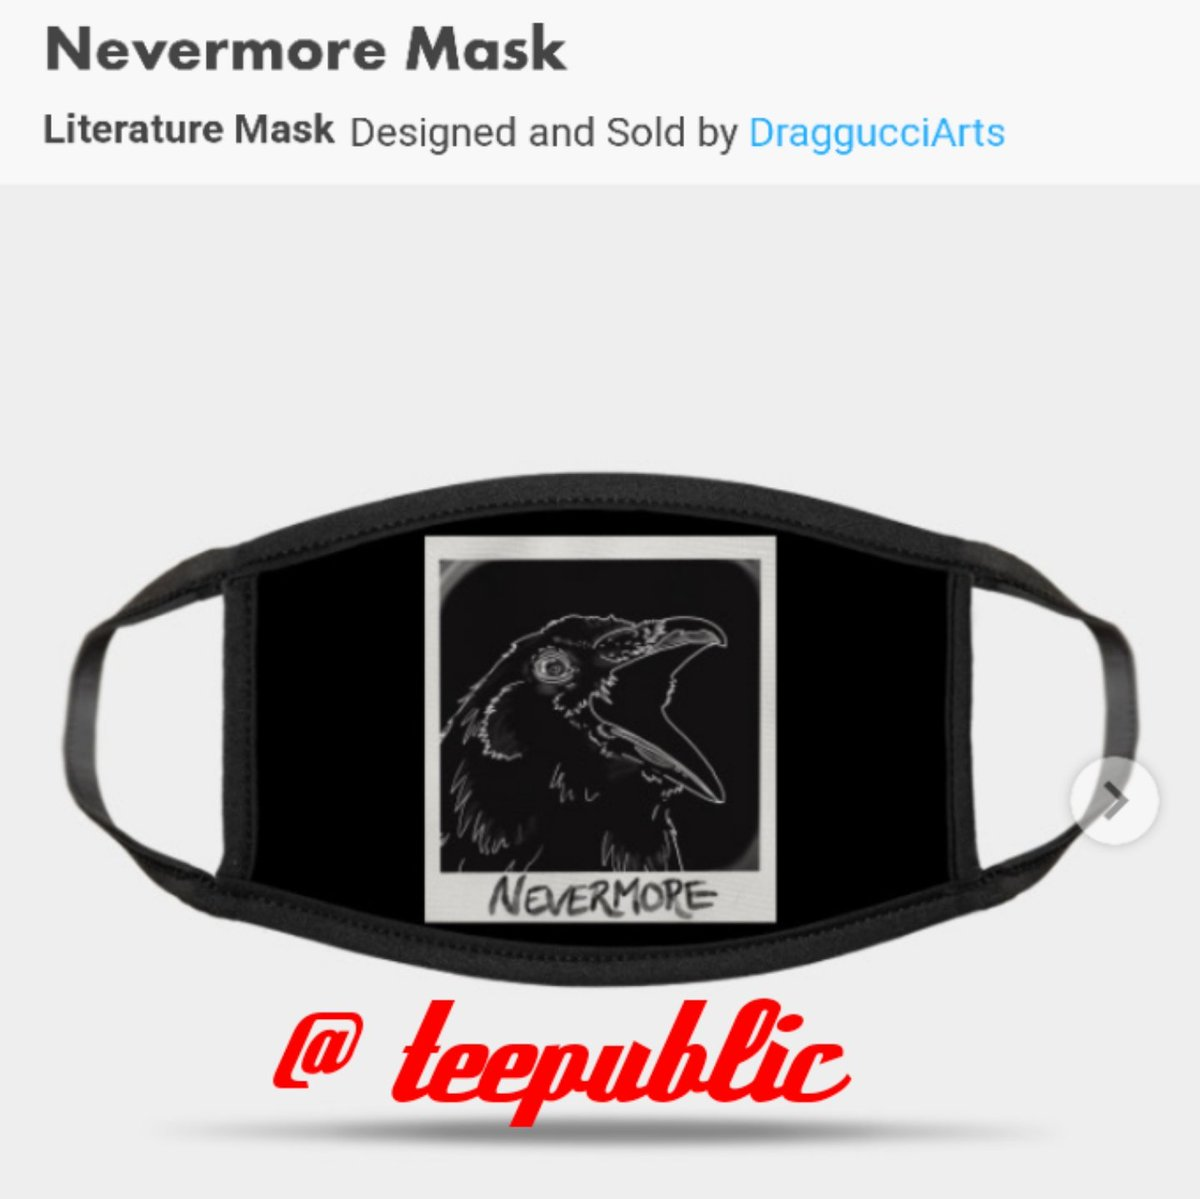 🙀 MASKS, PILLOWS, PHONE CASES & TOTES, OH MY!!! @teepublic isnt just about shirts, they have a whole assortment of merch with my Nevermore design. Go check them out. Its easy to get to, the link is below. ✌️😉 teepublic.com/user/draggucci…